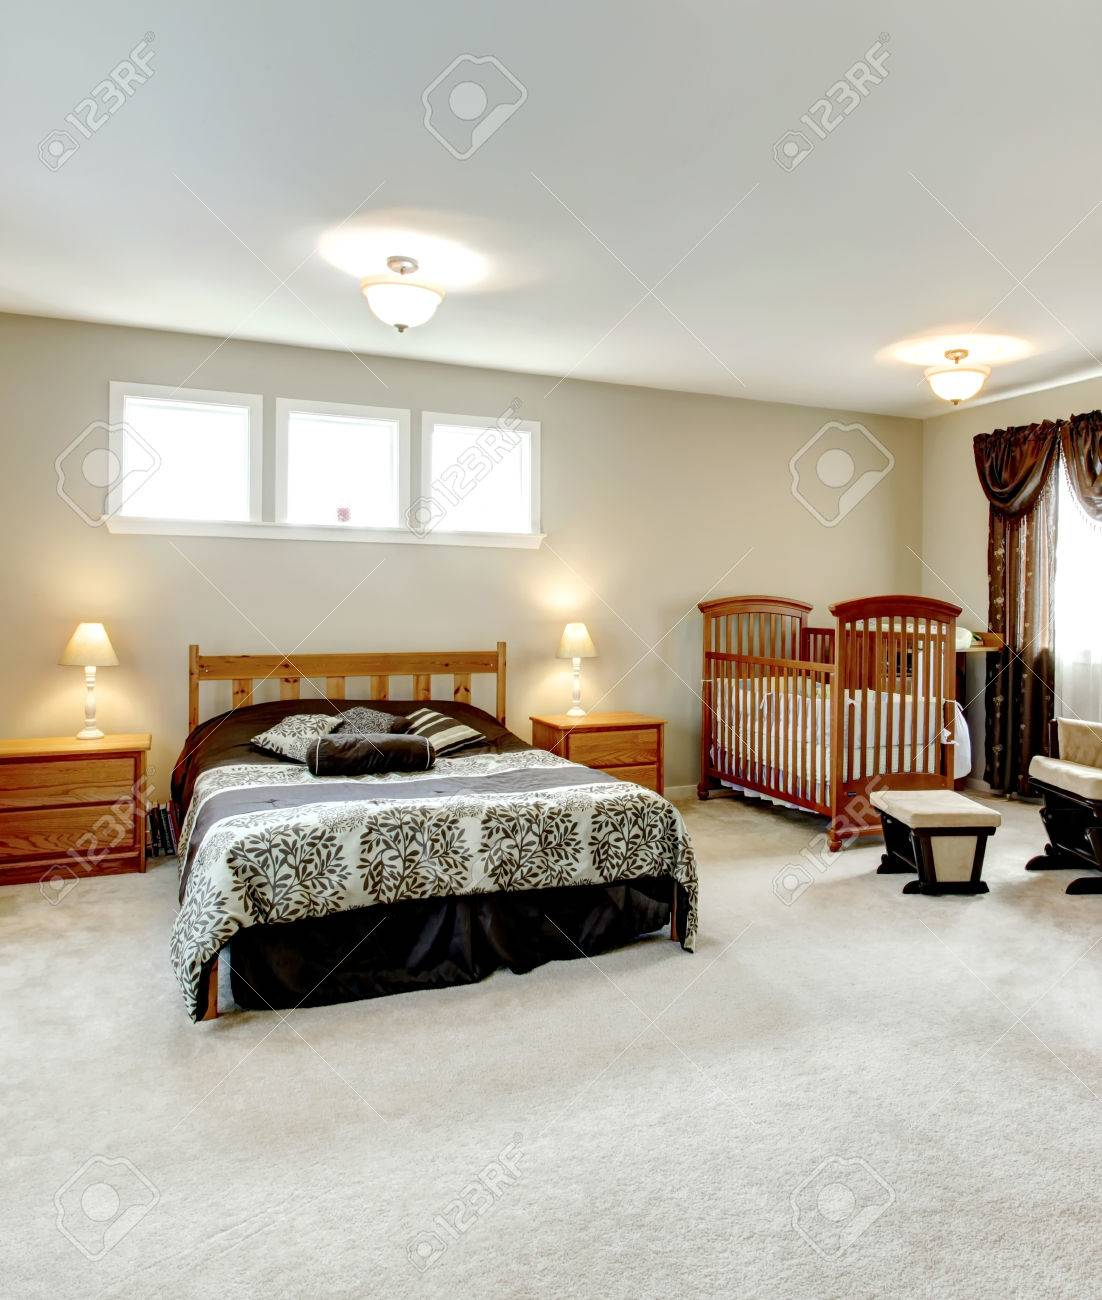 Big Master Bedroom With A Walk In Closet. Nursery Corner With A Crib.